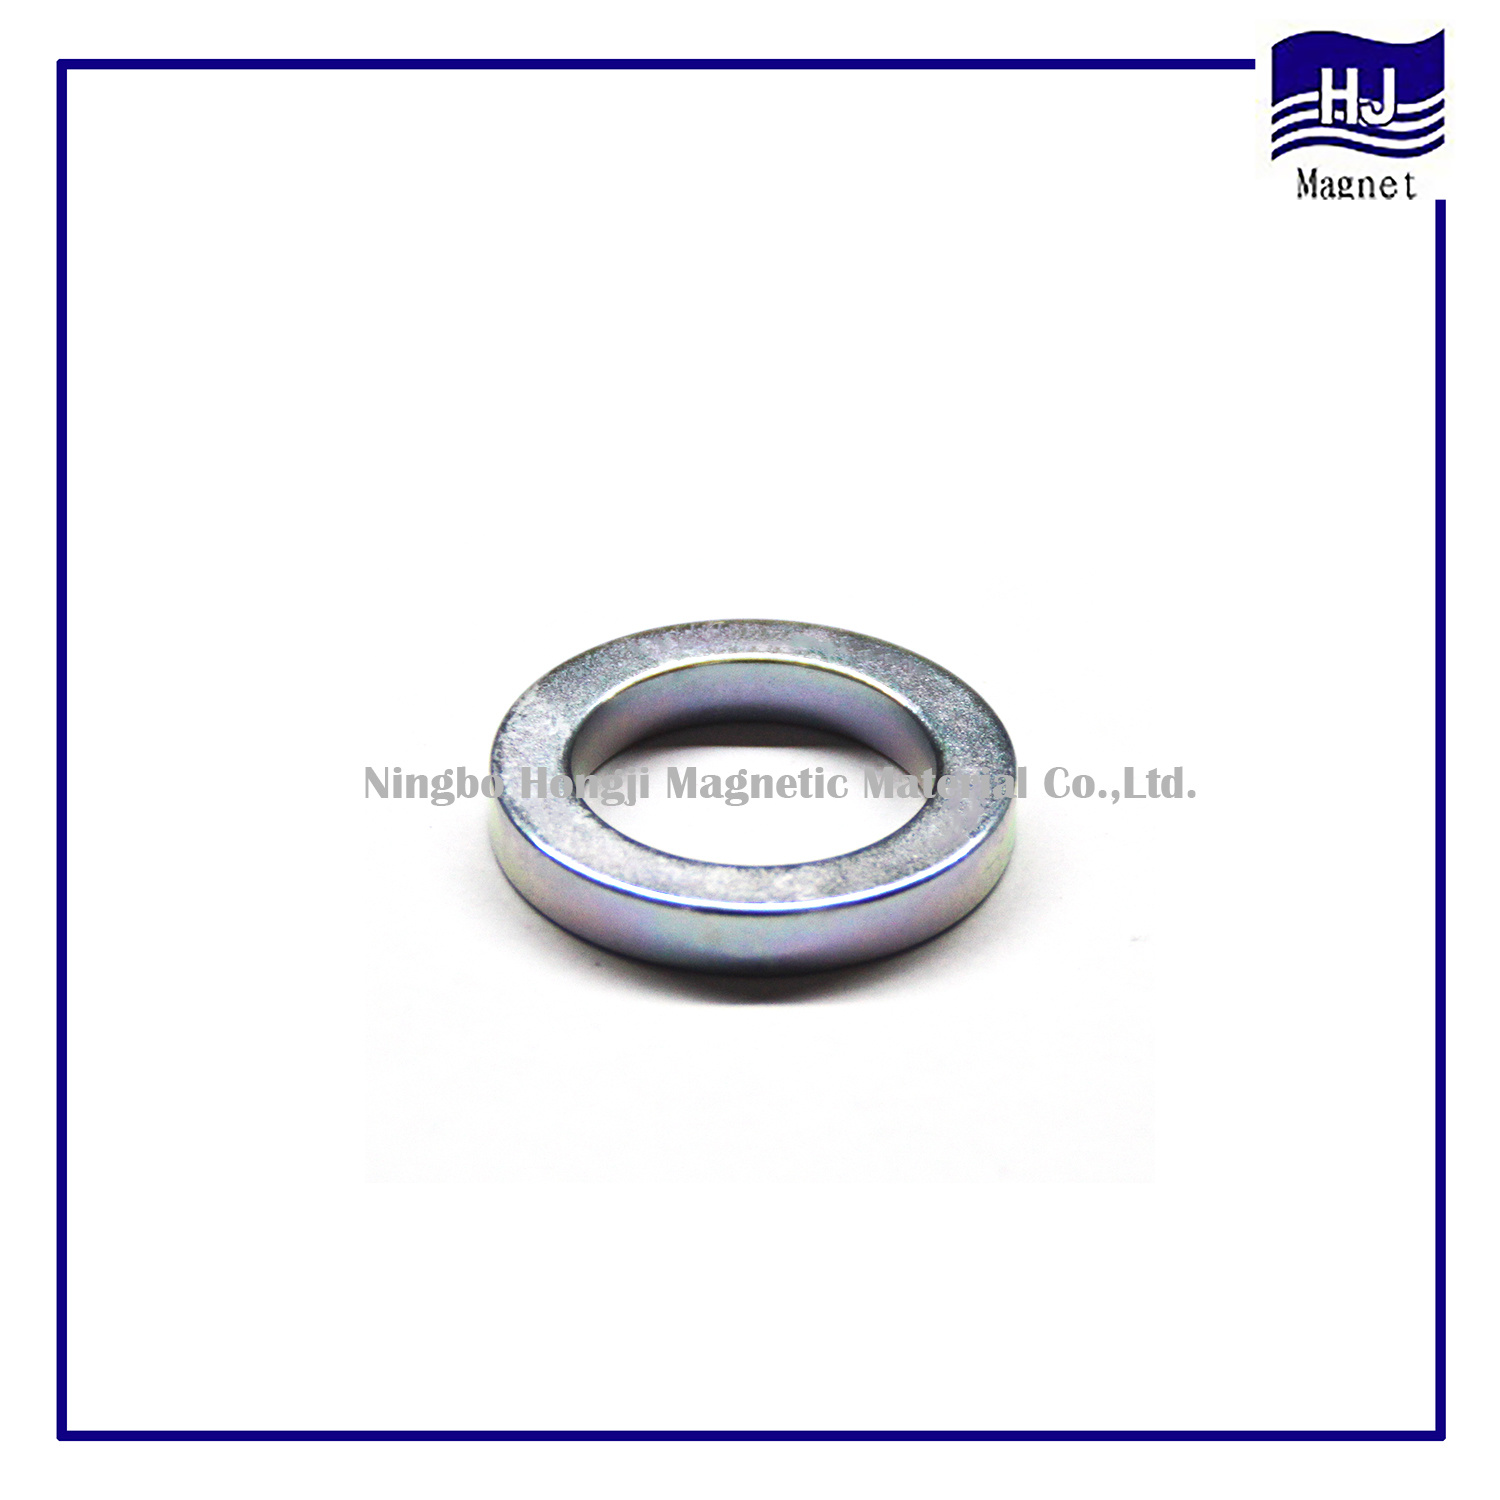 Big Ring Cylindrical Neodymium NdFeB Magnet Motors with High Strong Quality